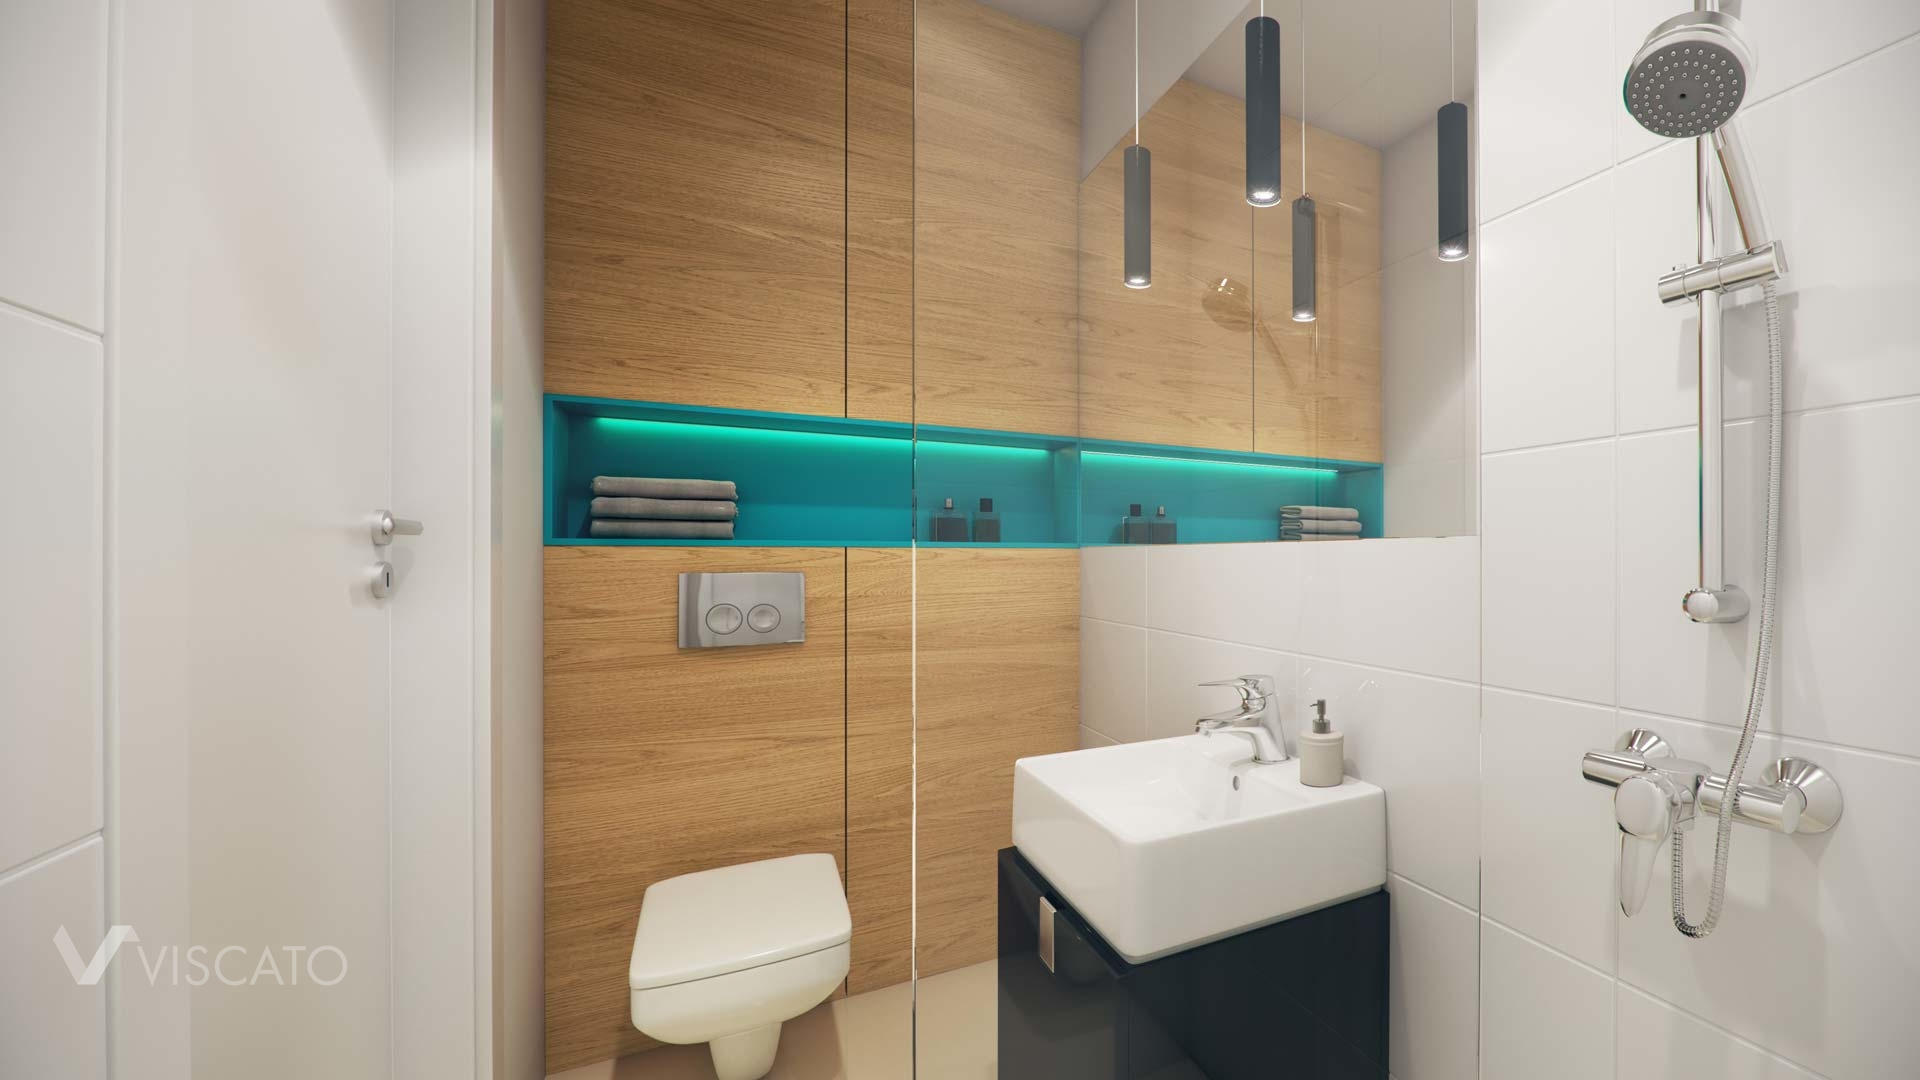 3D vizualization of a bathroom in a micro apartment in Poland- Viscato